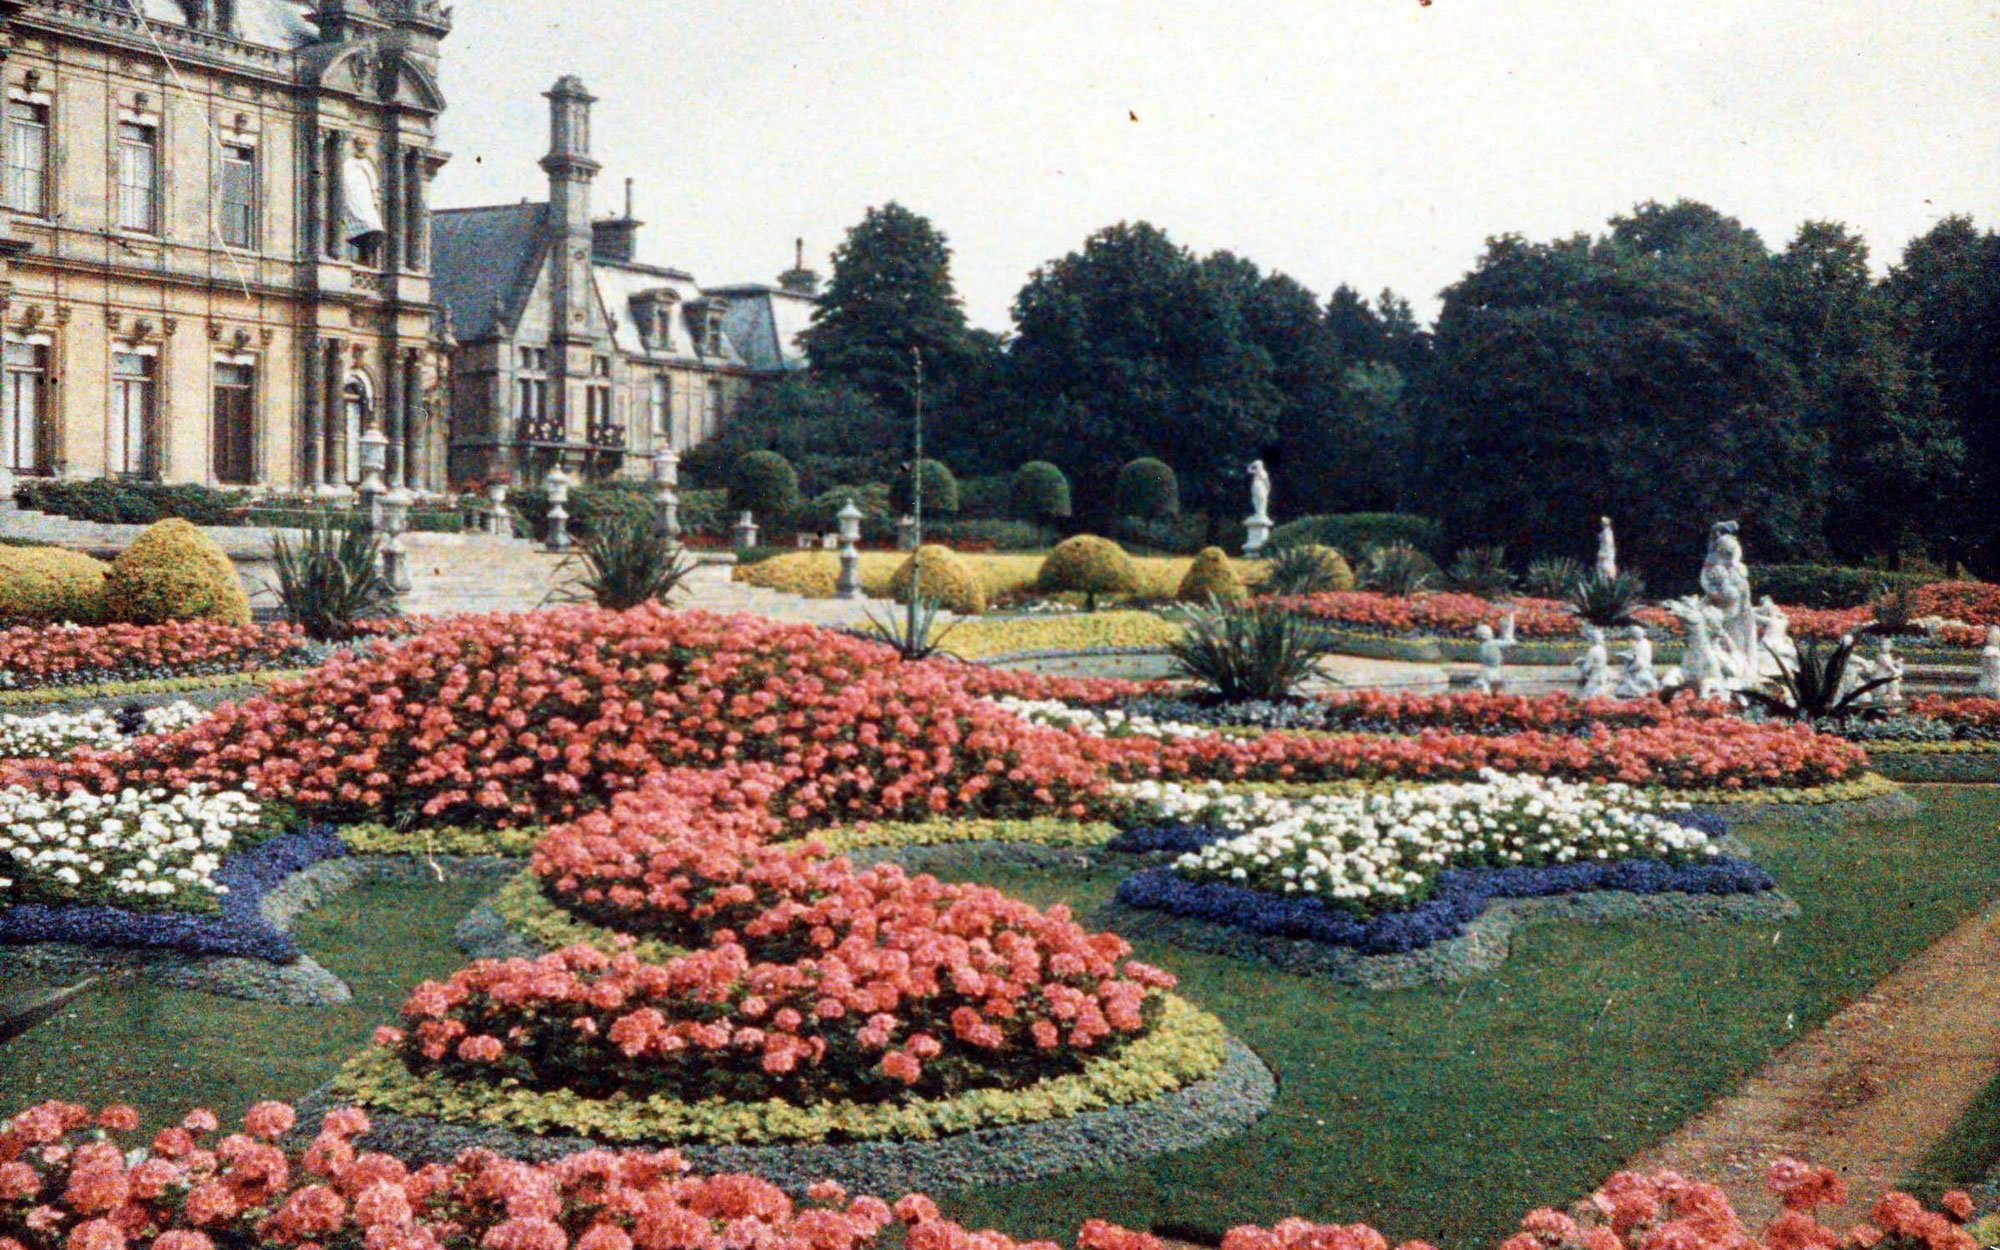 The parterre in 1910